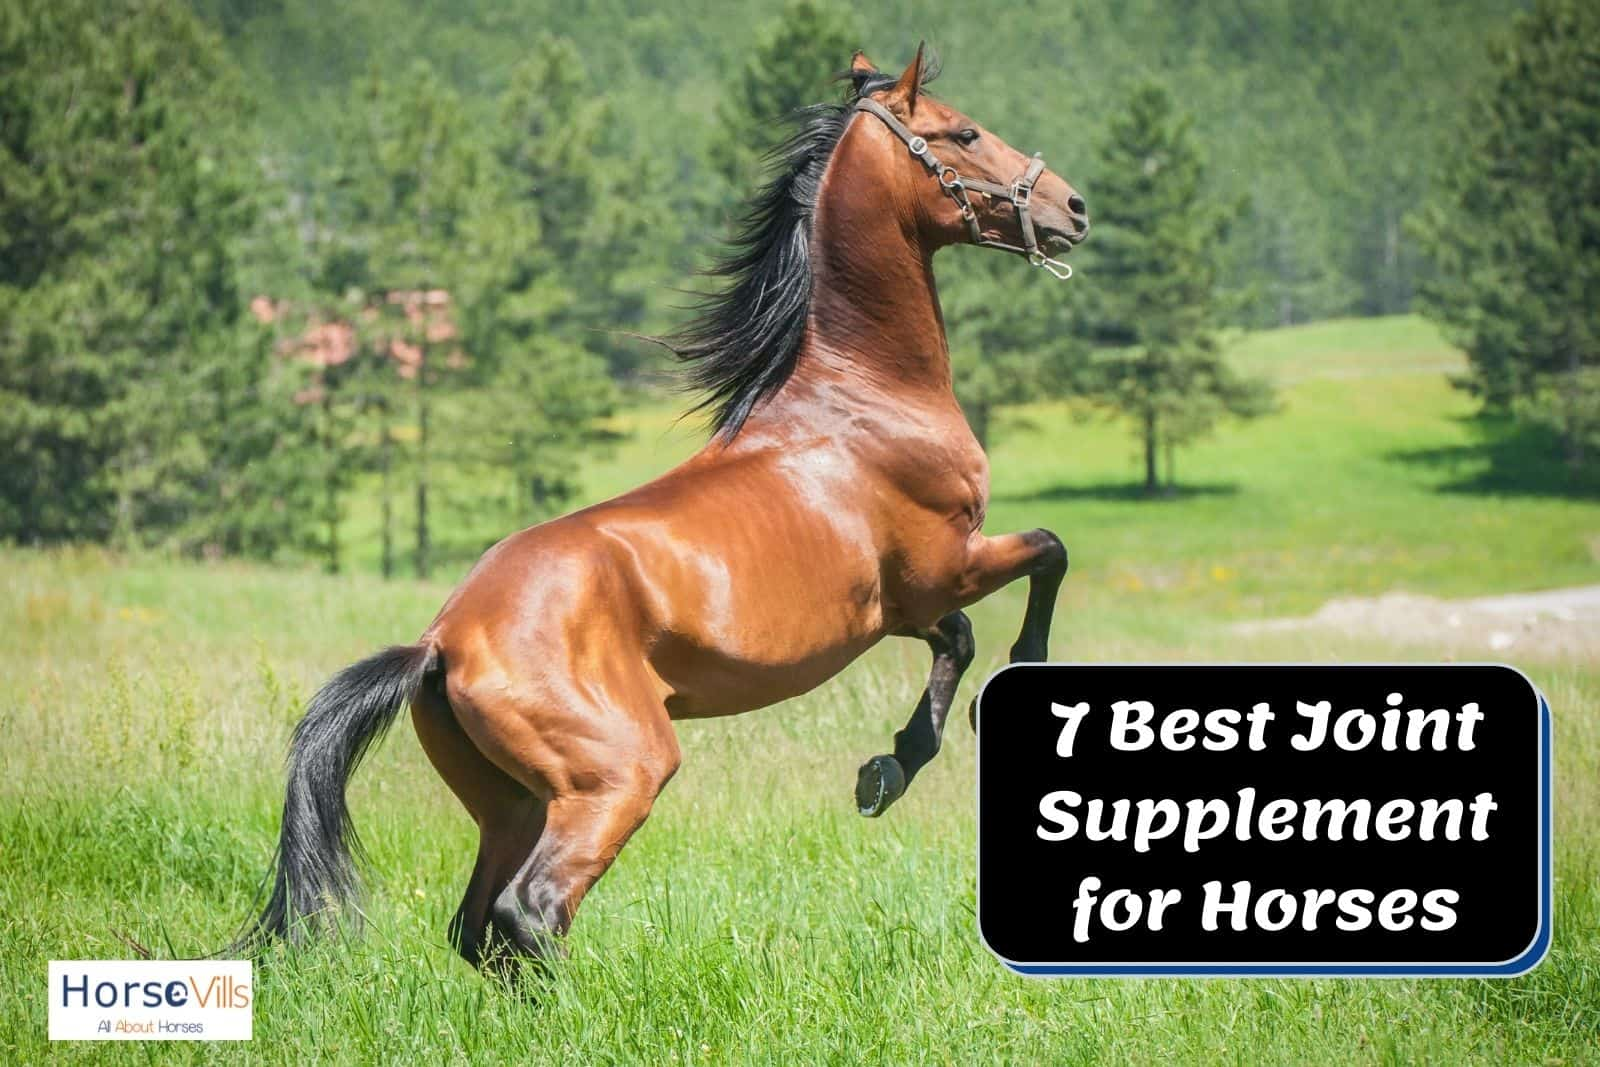 a brown horse galloping: what is the best Best joint supplement for horses to maintain their strength?